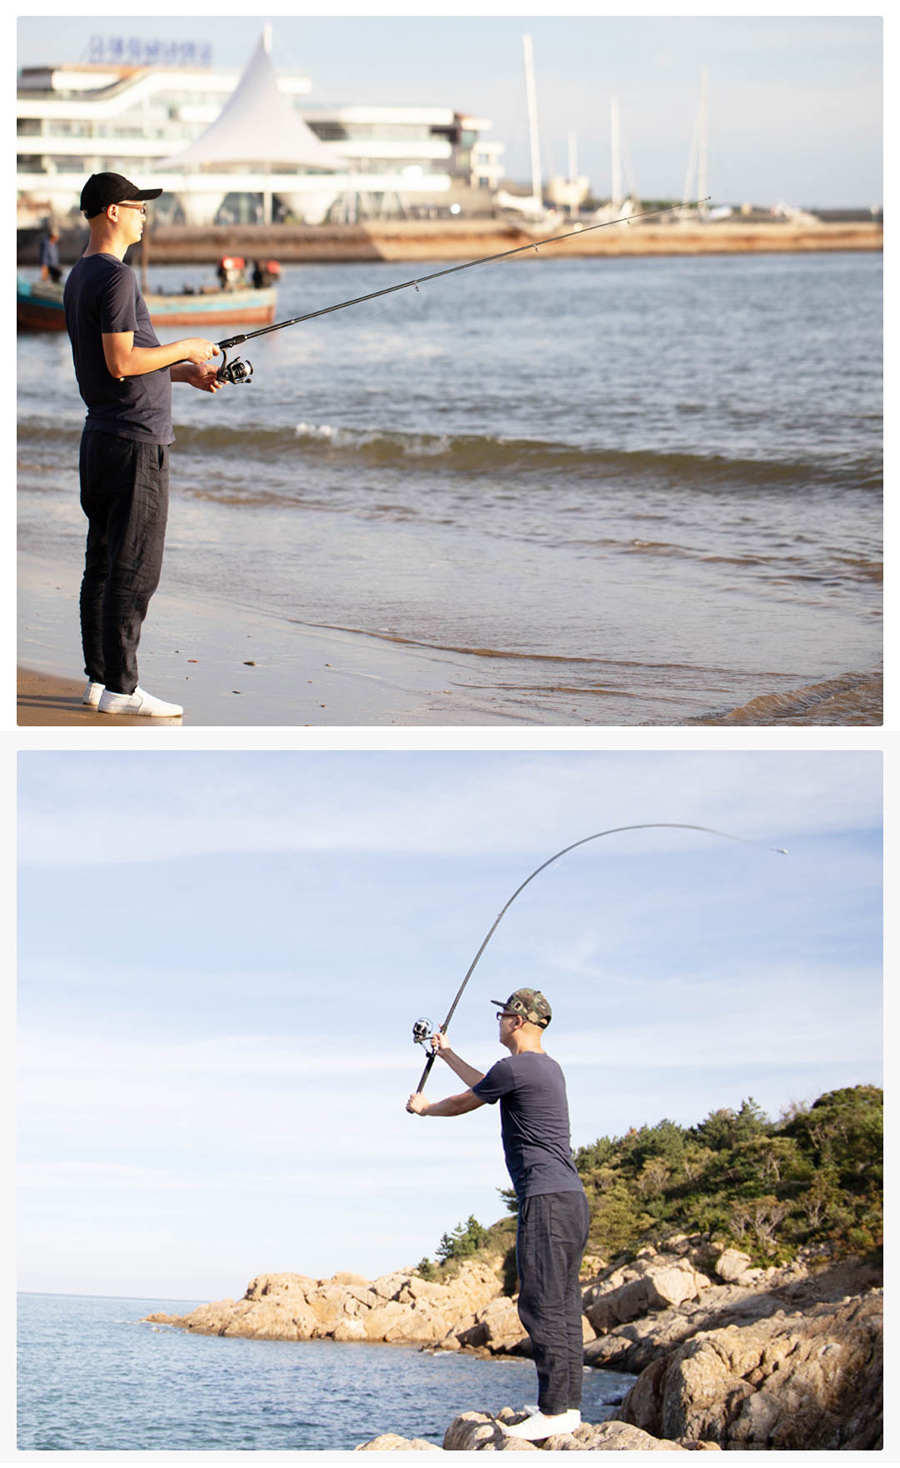 XIAOMI CADENCE Carbon Fiber 2.1-2.7m Fishing Rod Reel Combo Outdoor Fishing Pole Spinning Reel Suit